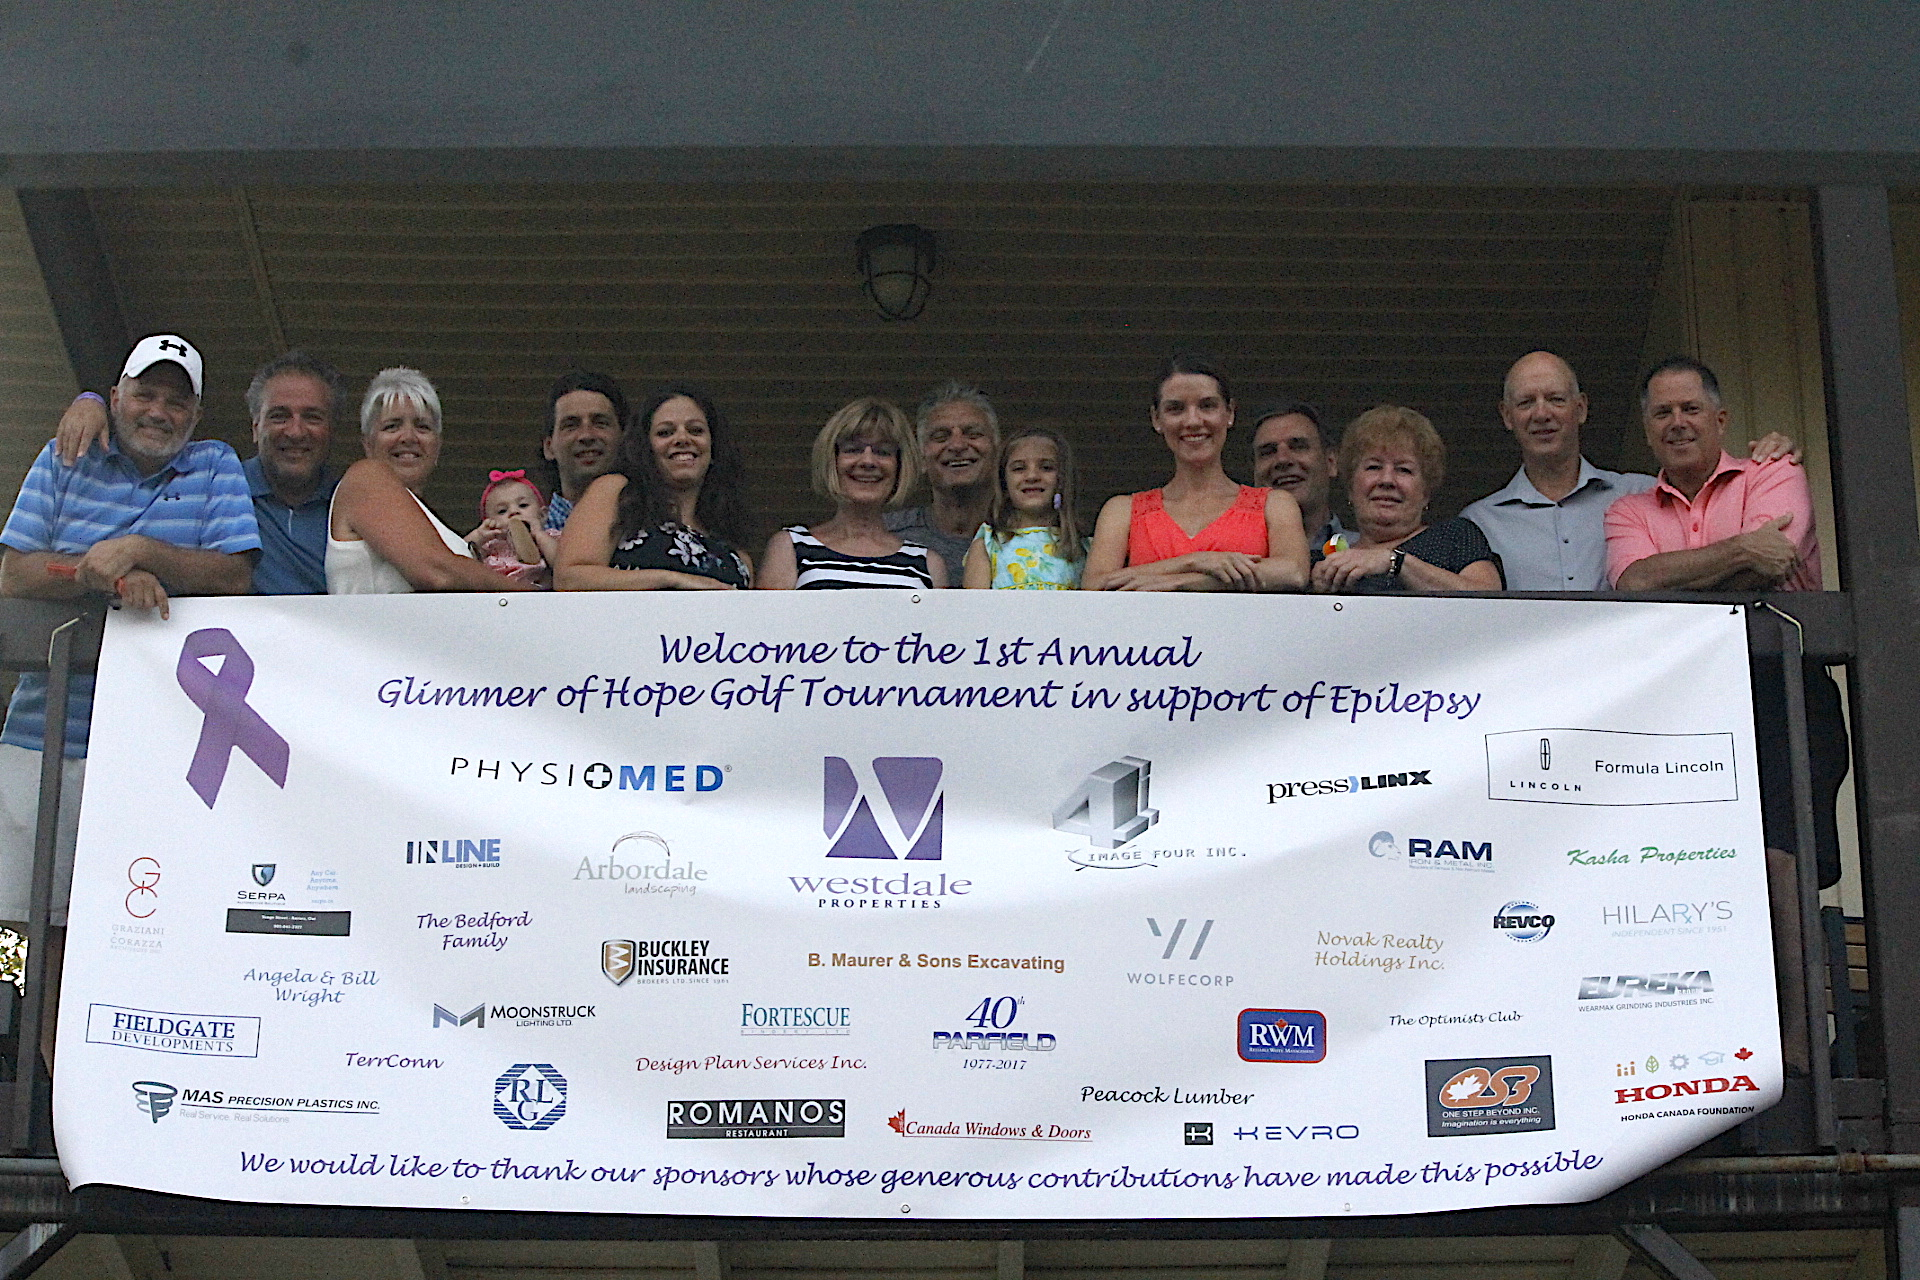 Glimmer of Hope Golf Tournament - Default Image of Corporate sponsorship